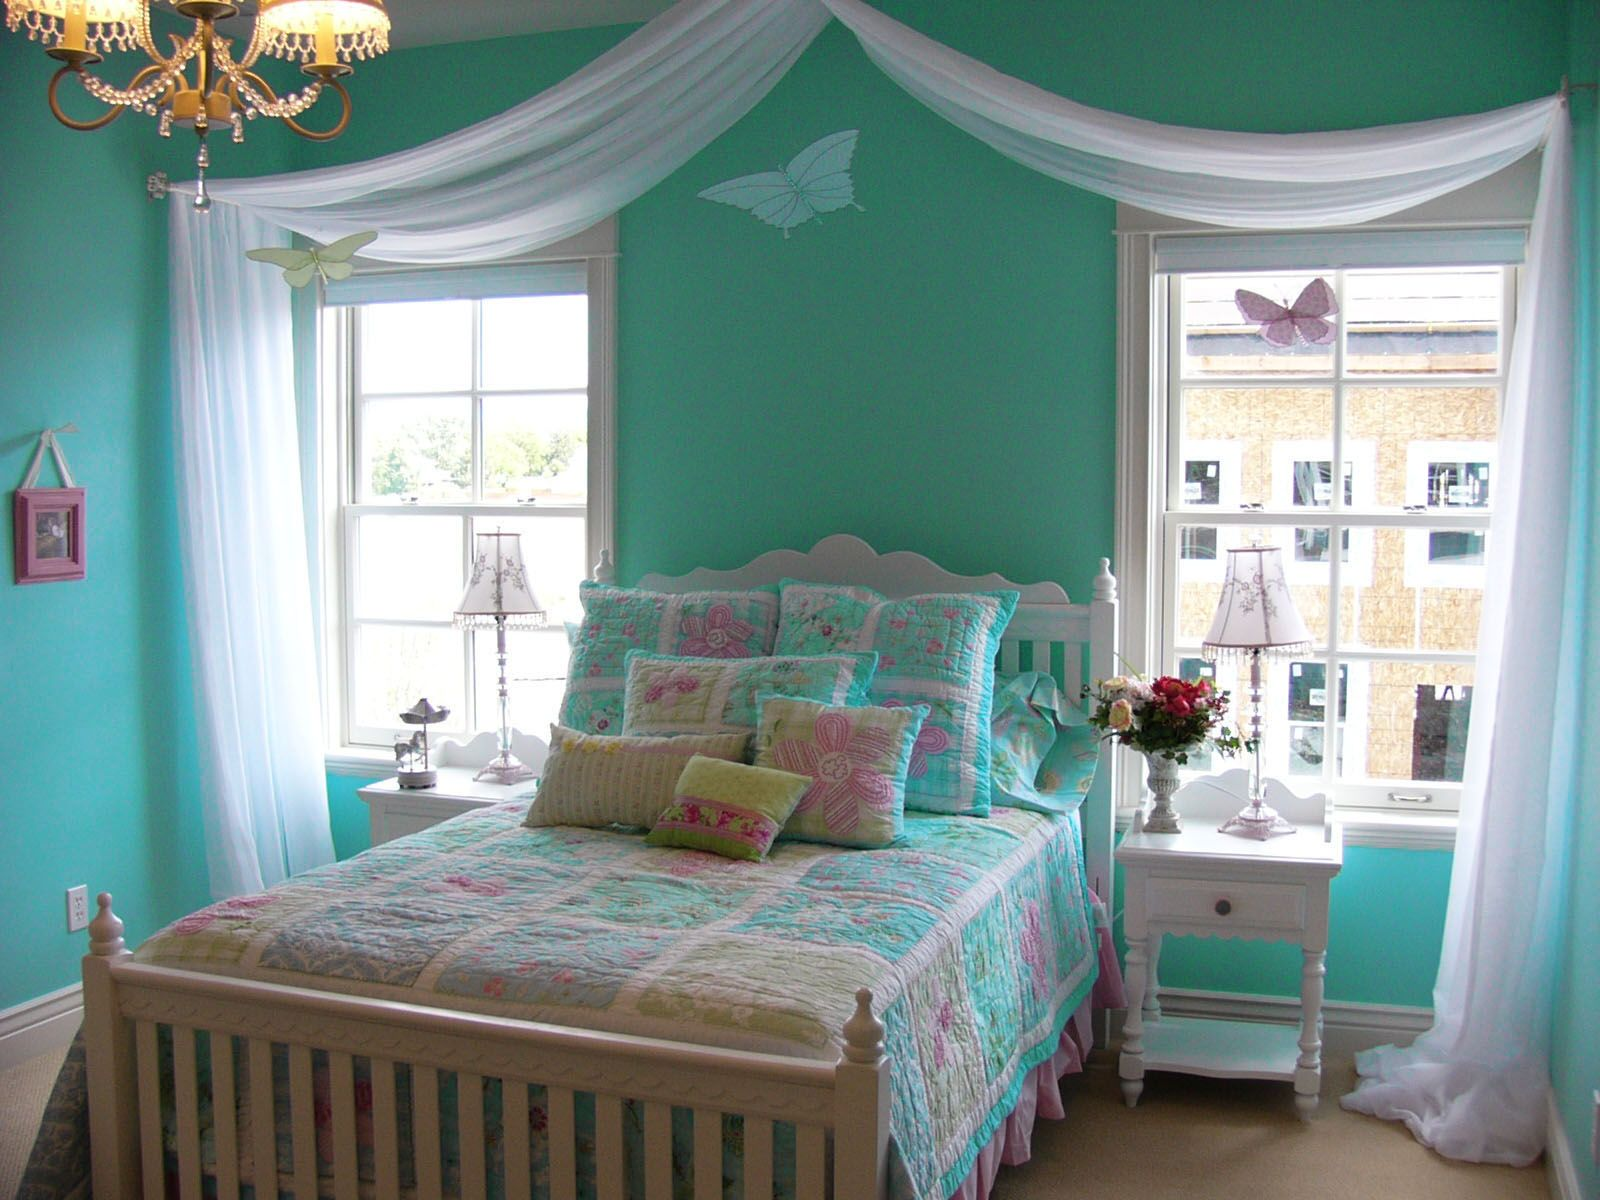 Wall paint colors for girls bedroom - Turquoise Wall Paint Color Bedroom Ideas Decorating Using Turquoise Palatial Turquoise Home Decorating And